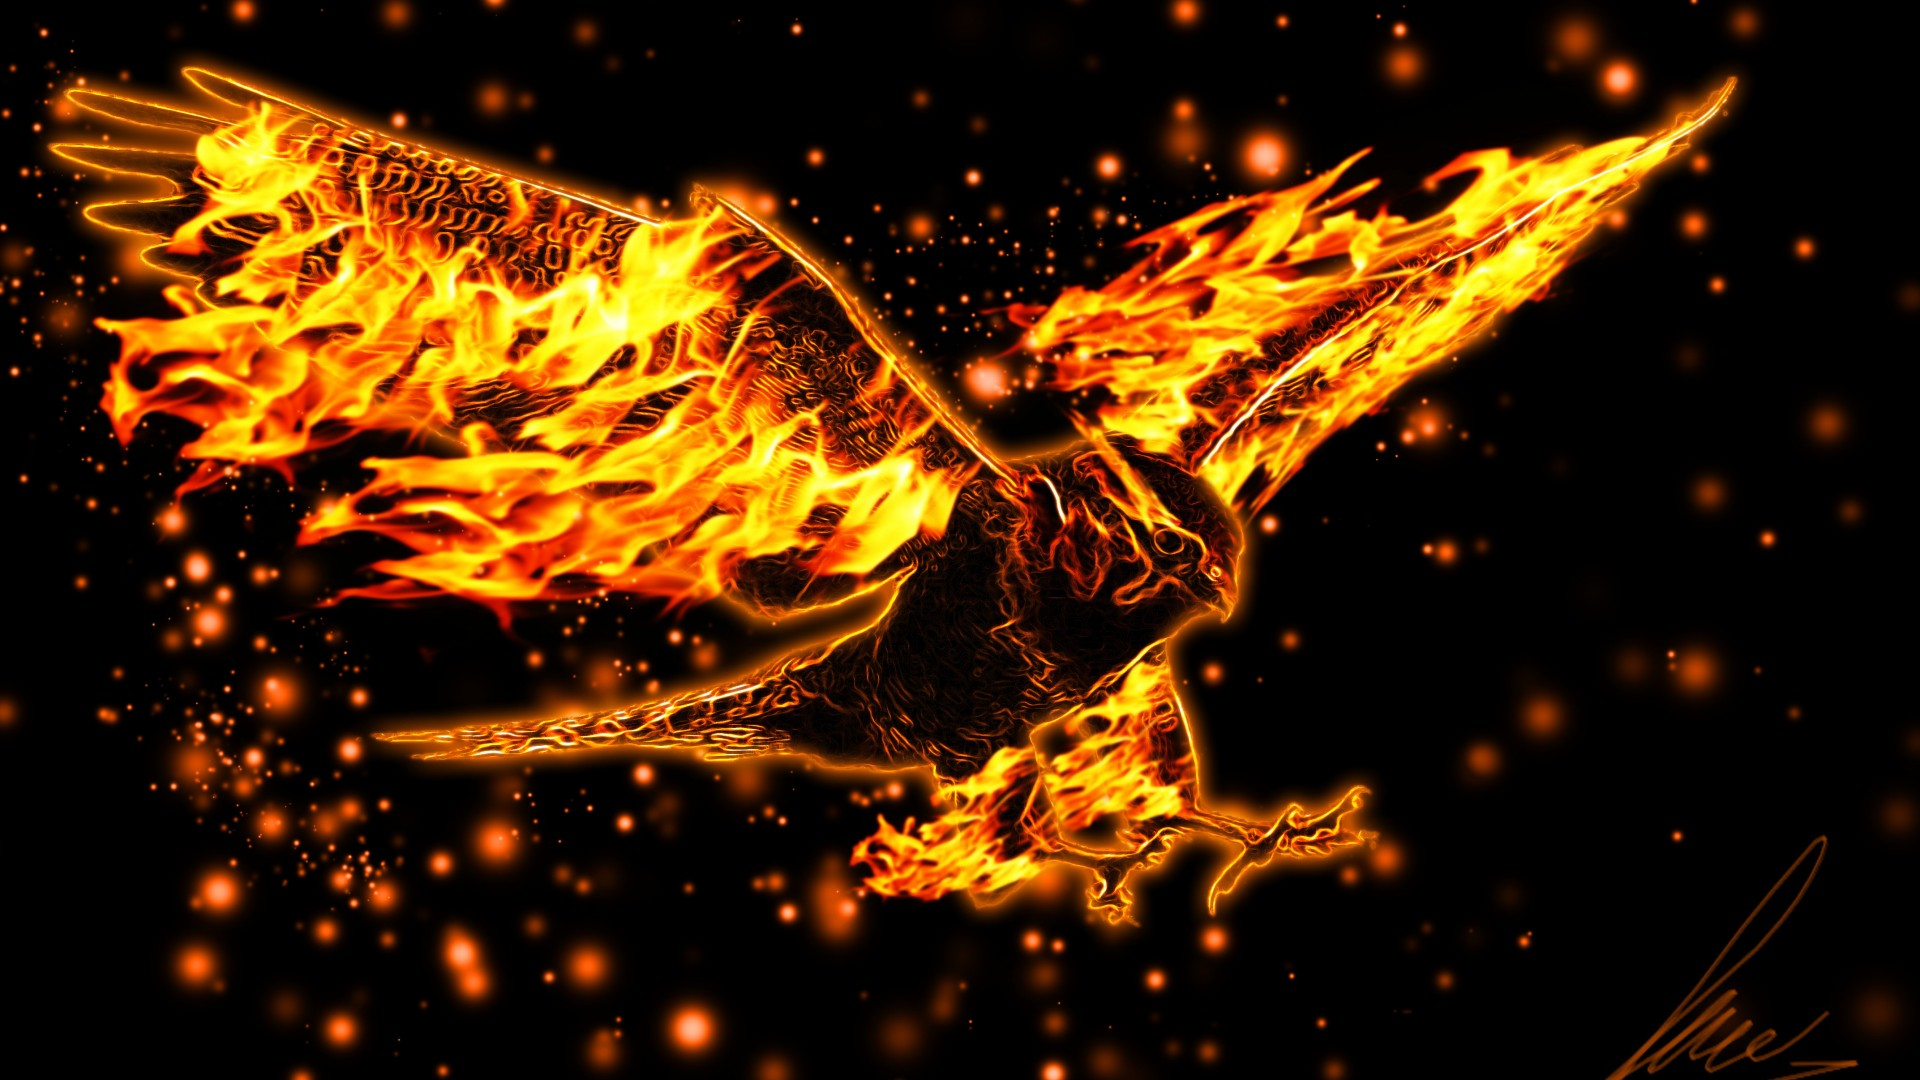 Burning eagle flight wings fire abstract wallpaper ...